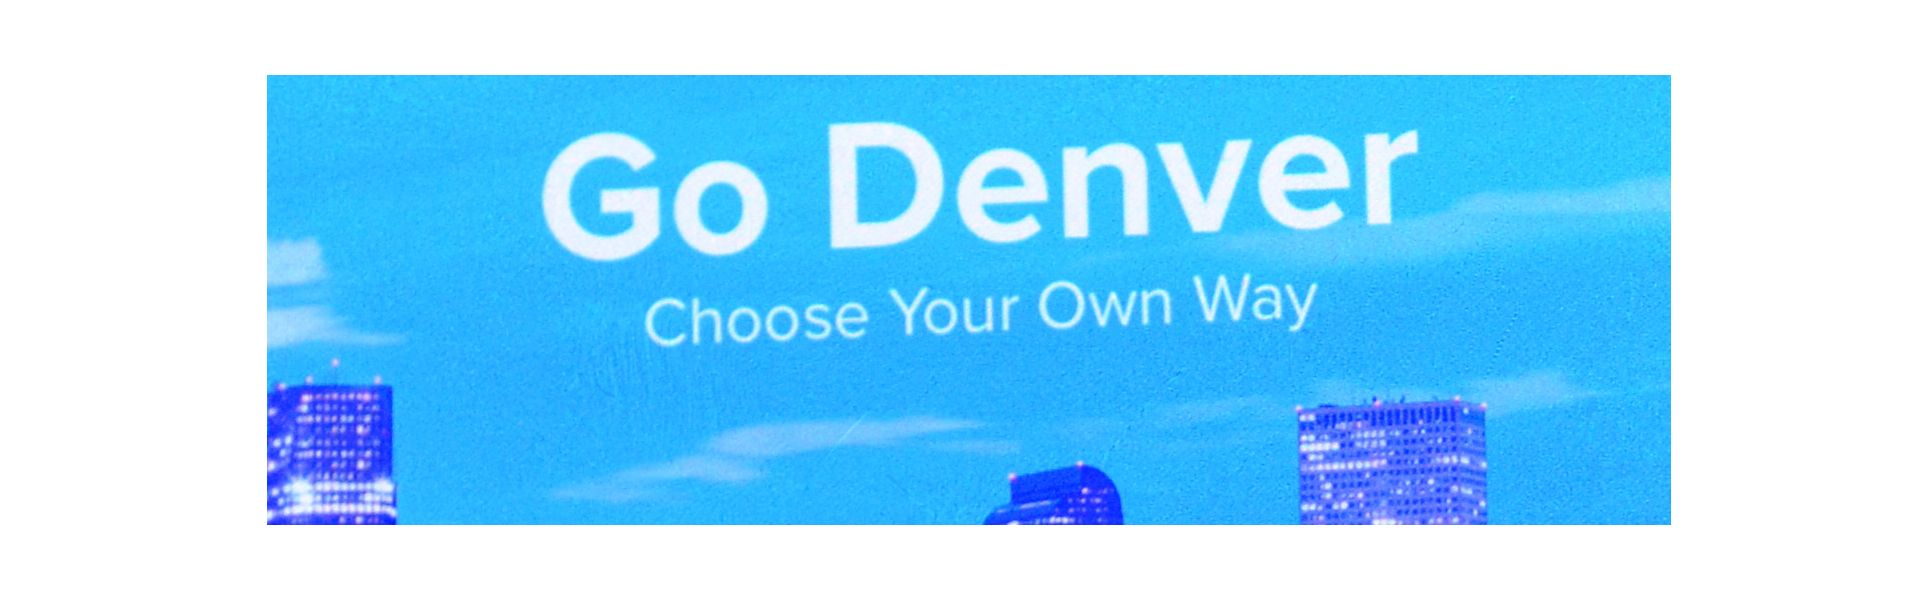 Denver Pilots New Travel App With Xerox To Get A Grip On Urban